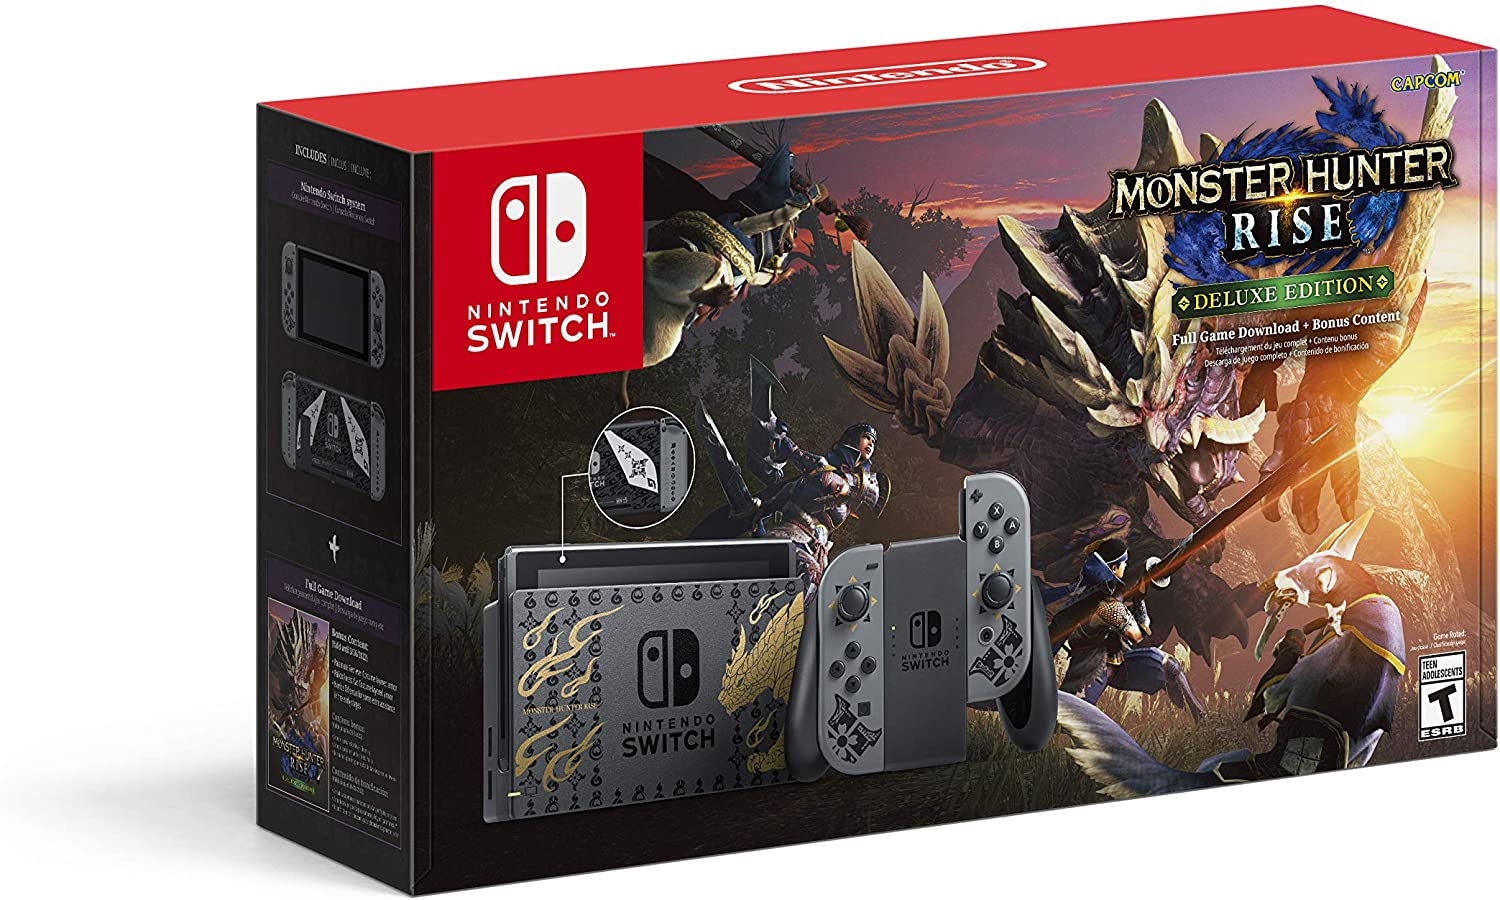 Nintendo Switch - Monster Hunter Rise Deluxe Edition